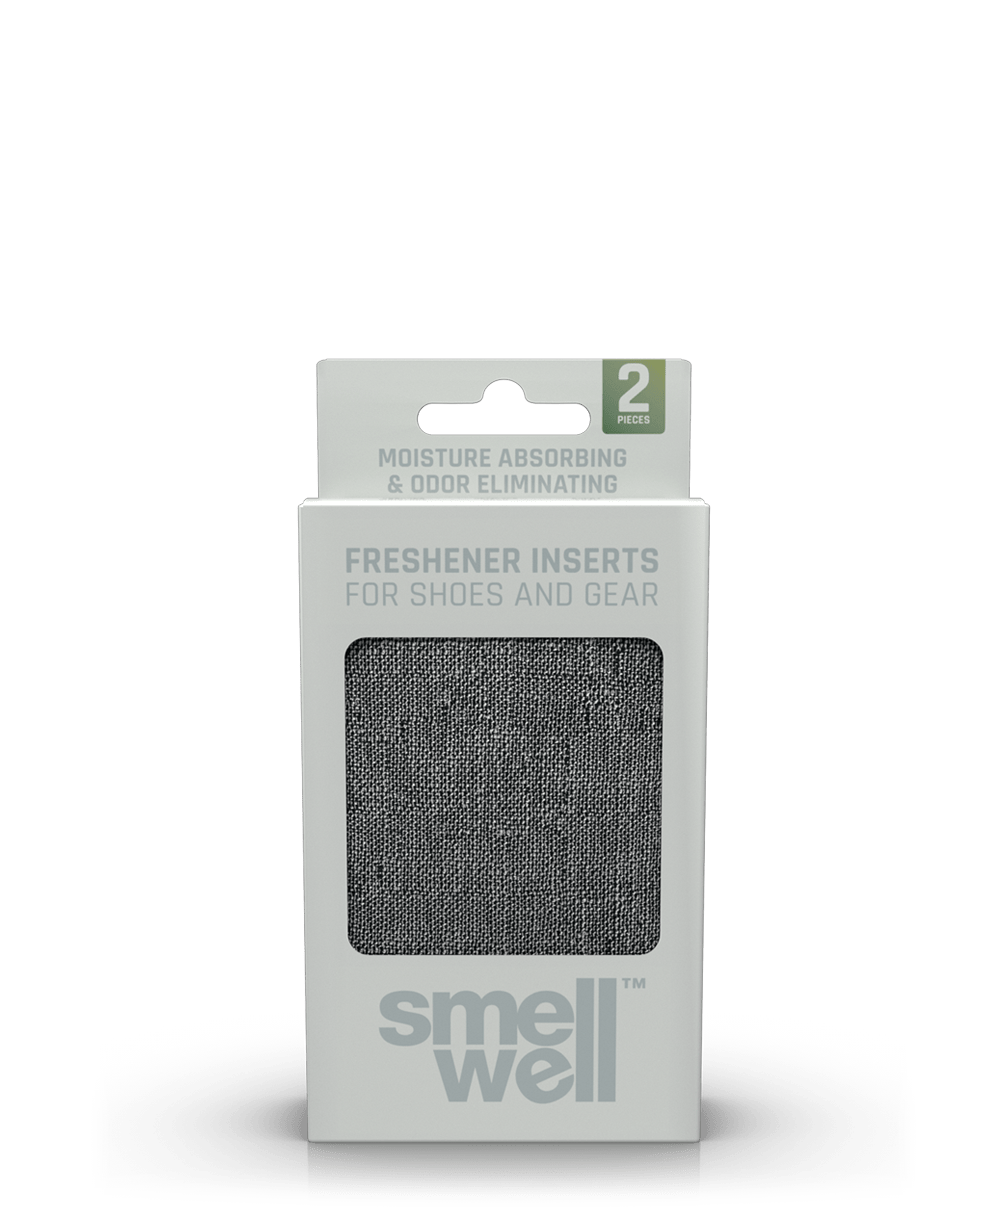 A package of SmellWell Sensitive - Grey